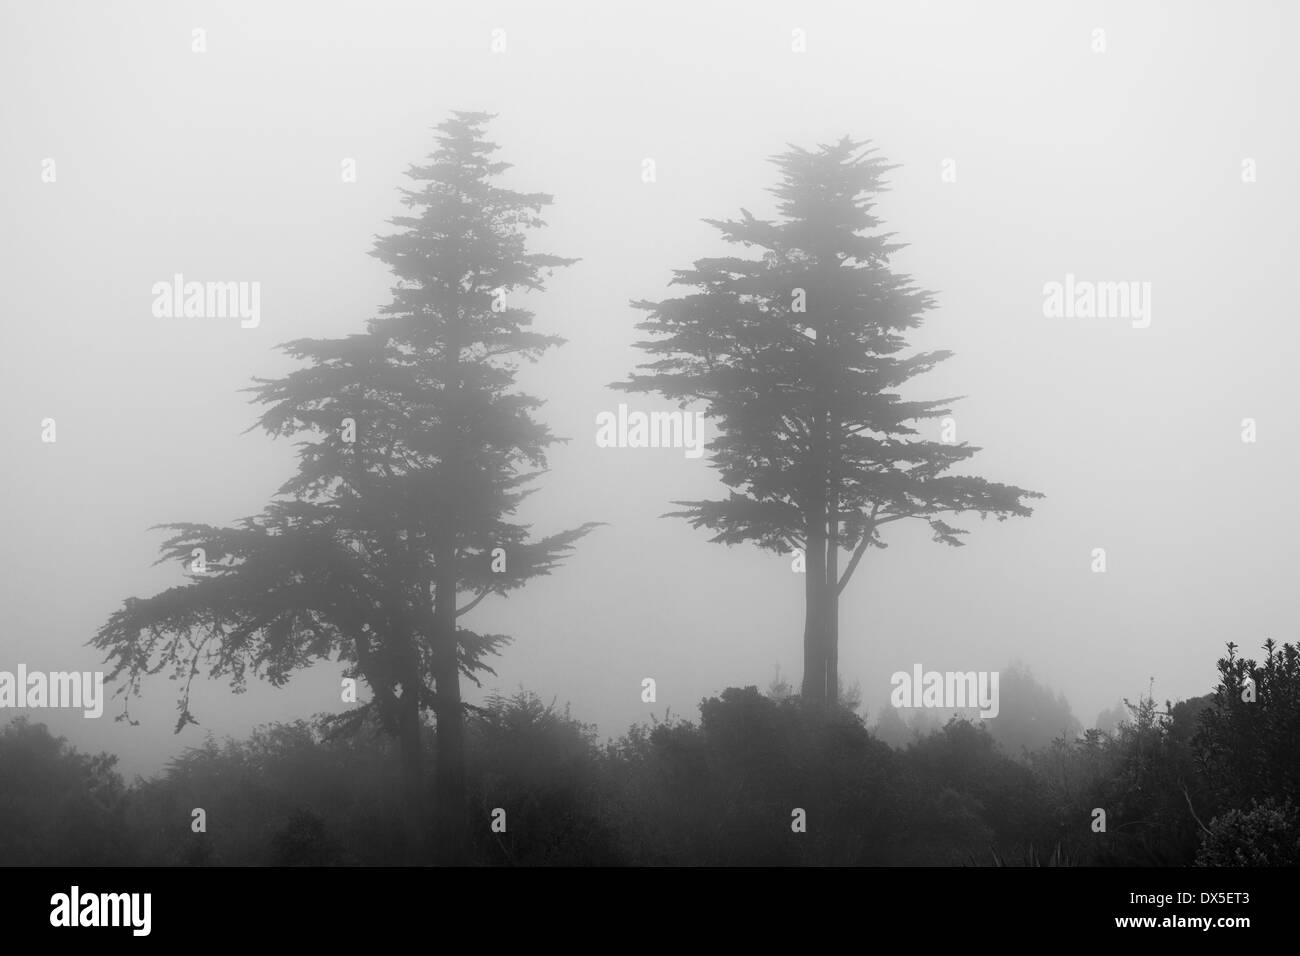 Two pine trees in the mist / low cloud - Stock Image